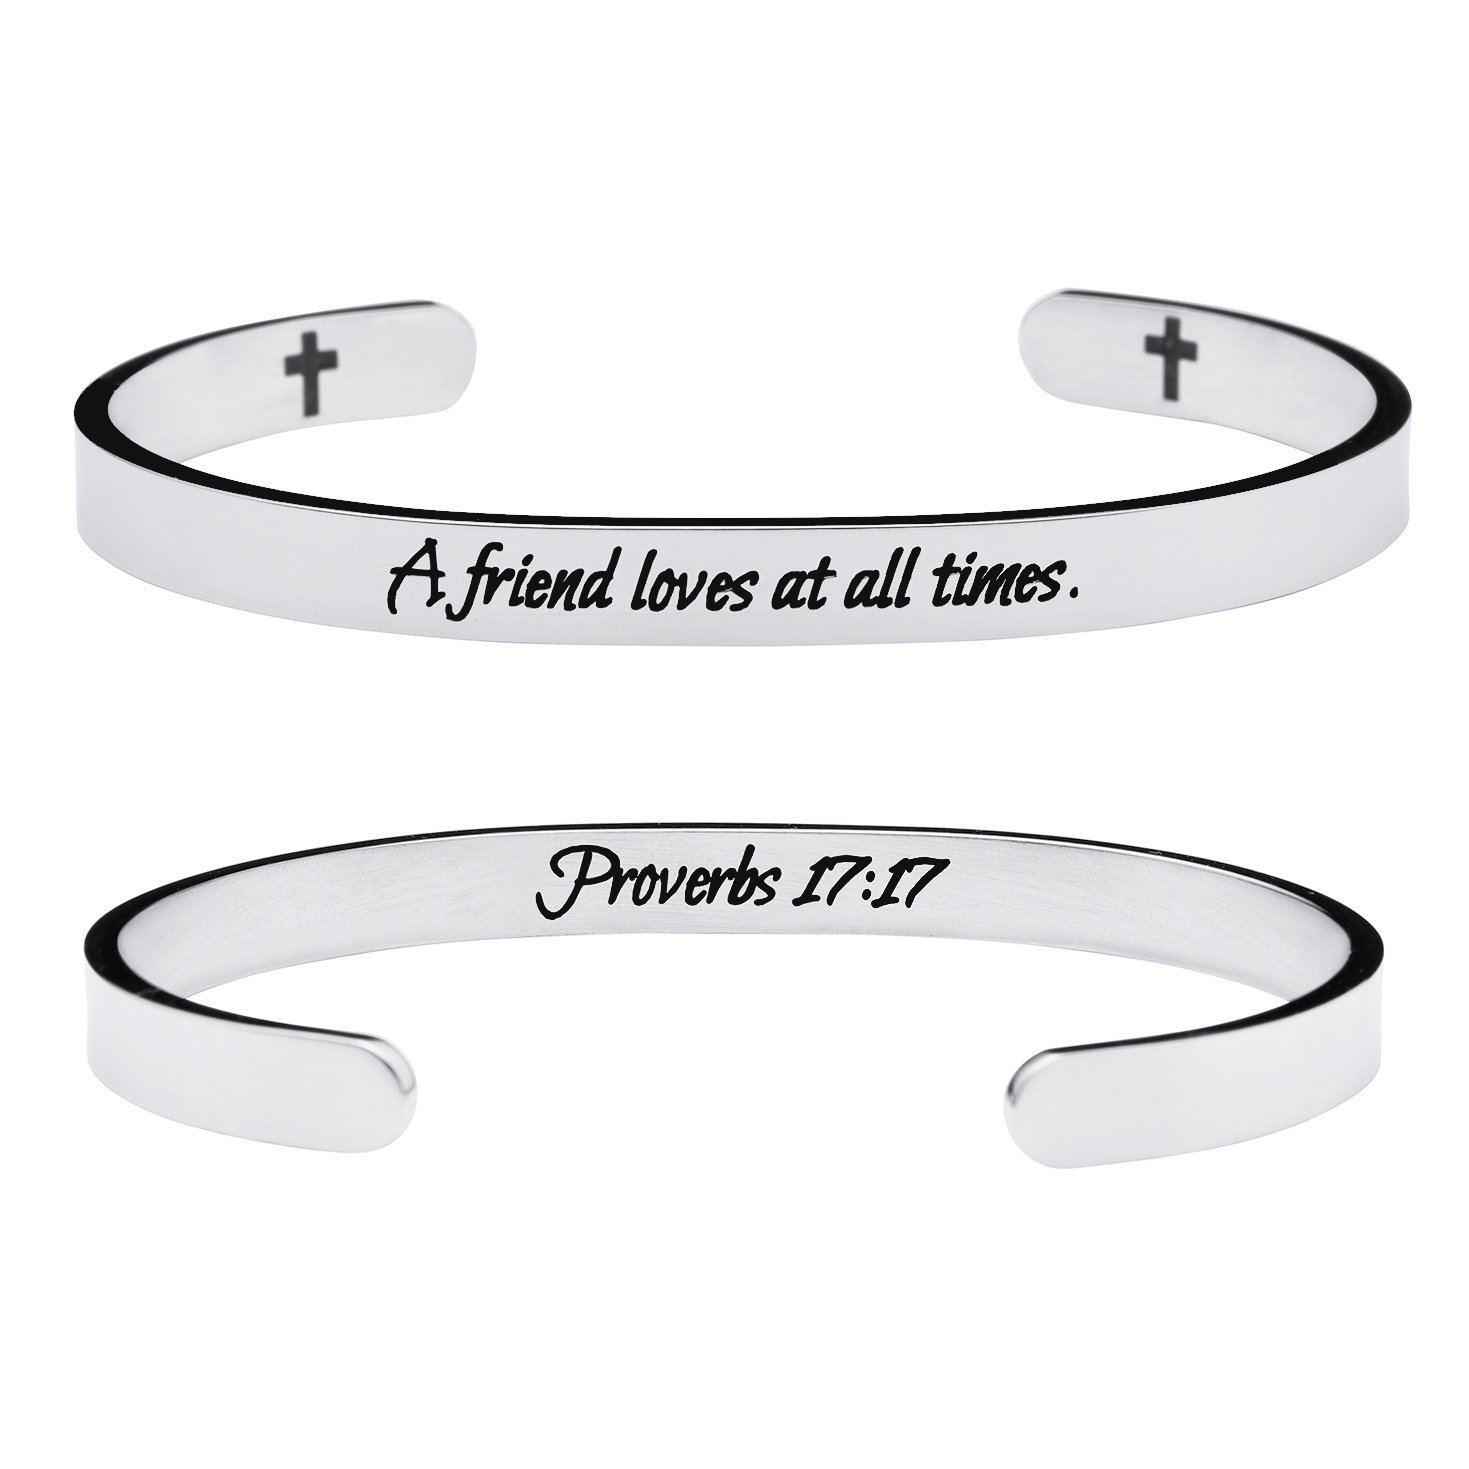 Yiyang Friendship Bracelets Chirstian Jewelry Positive Cuff Bangle Memorial Gift Proverb Engraved A Friend Loves at All Times by Yiyang (Image #1)